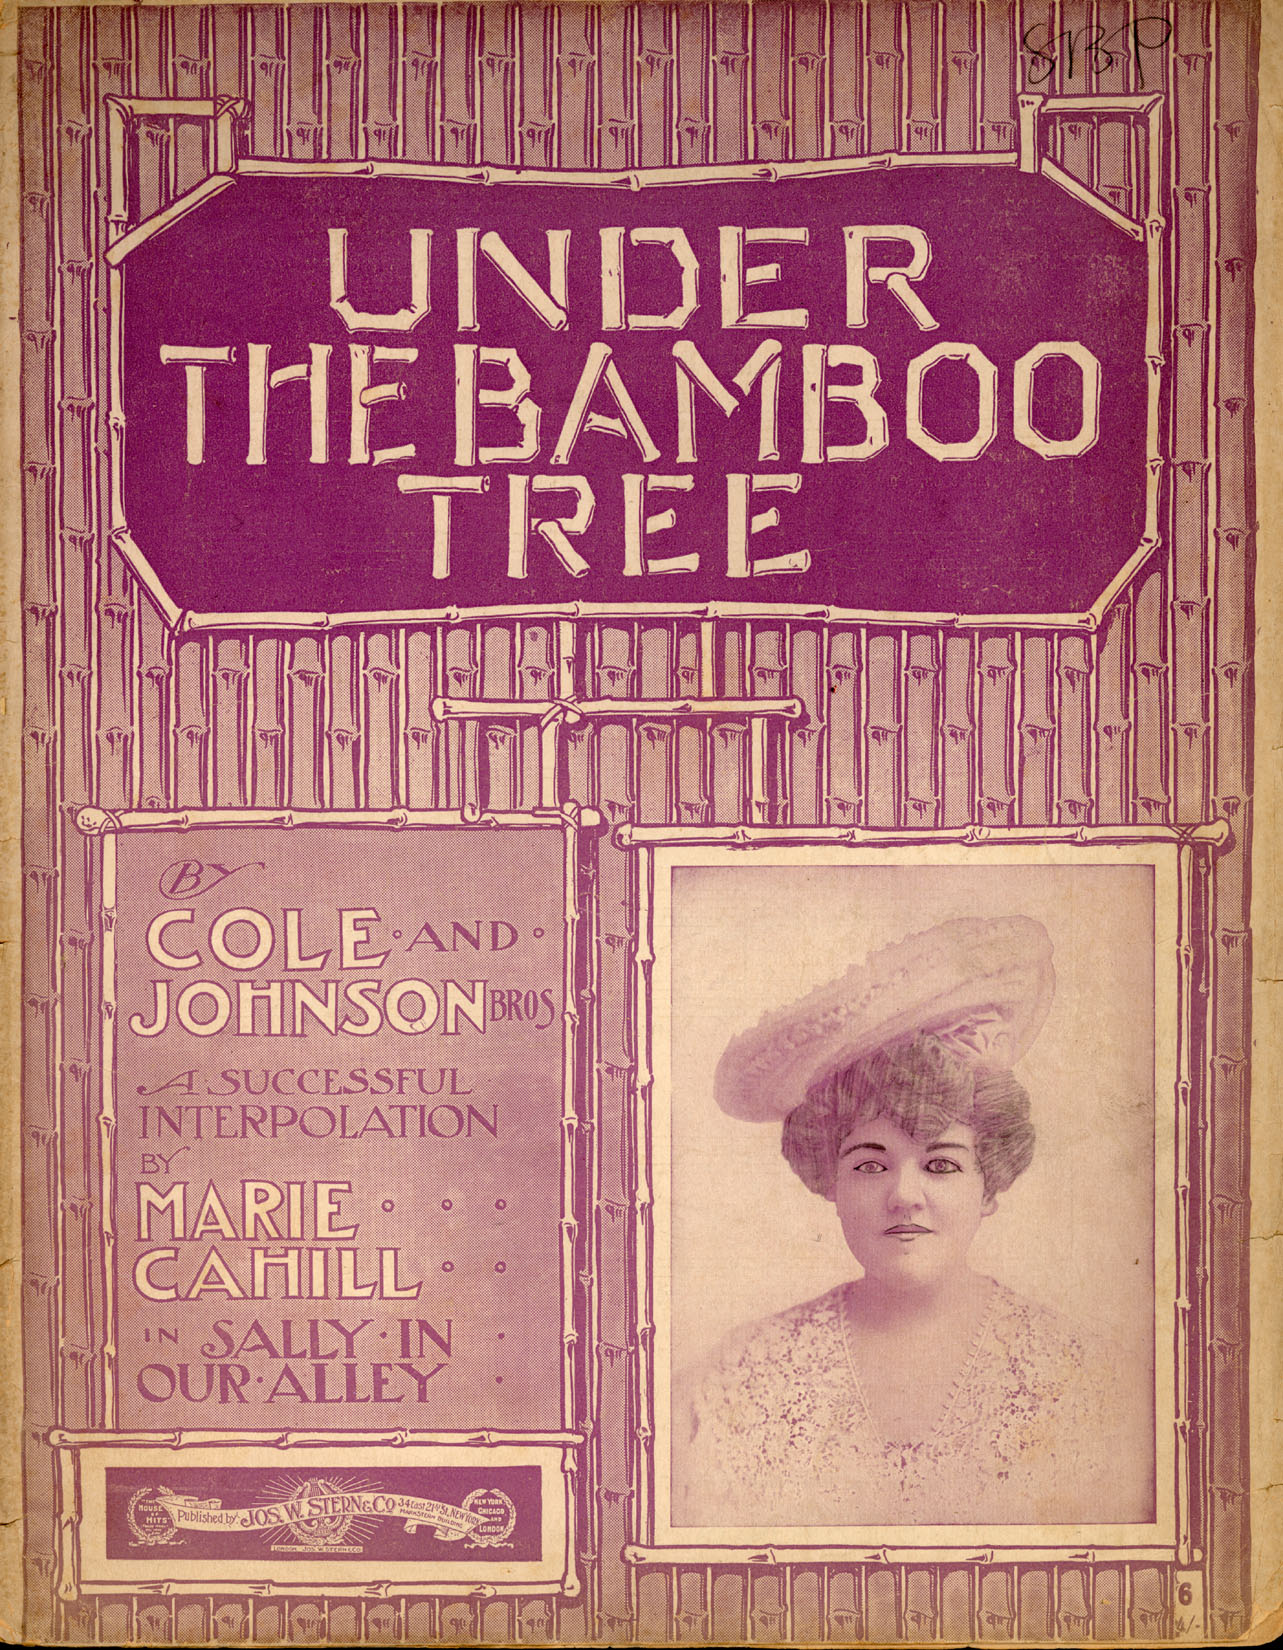 "Under the Bamboo Tree lyrics, words and music by Robert Cole and The Johnson Bros., 1902 performed by Margaret O'Brien (""Tootie"") and Judy Garland (""Esther"") in Meet Me in St. Louis"